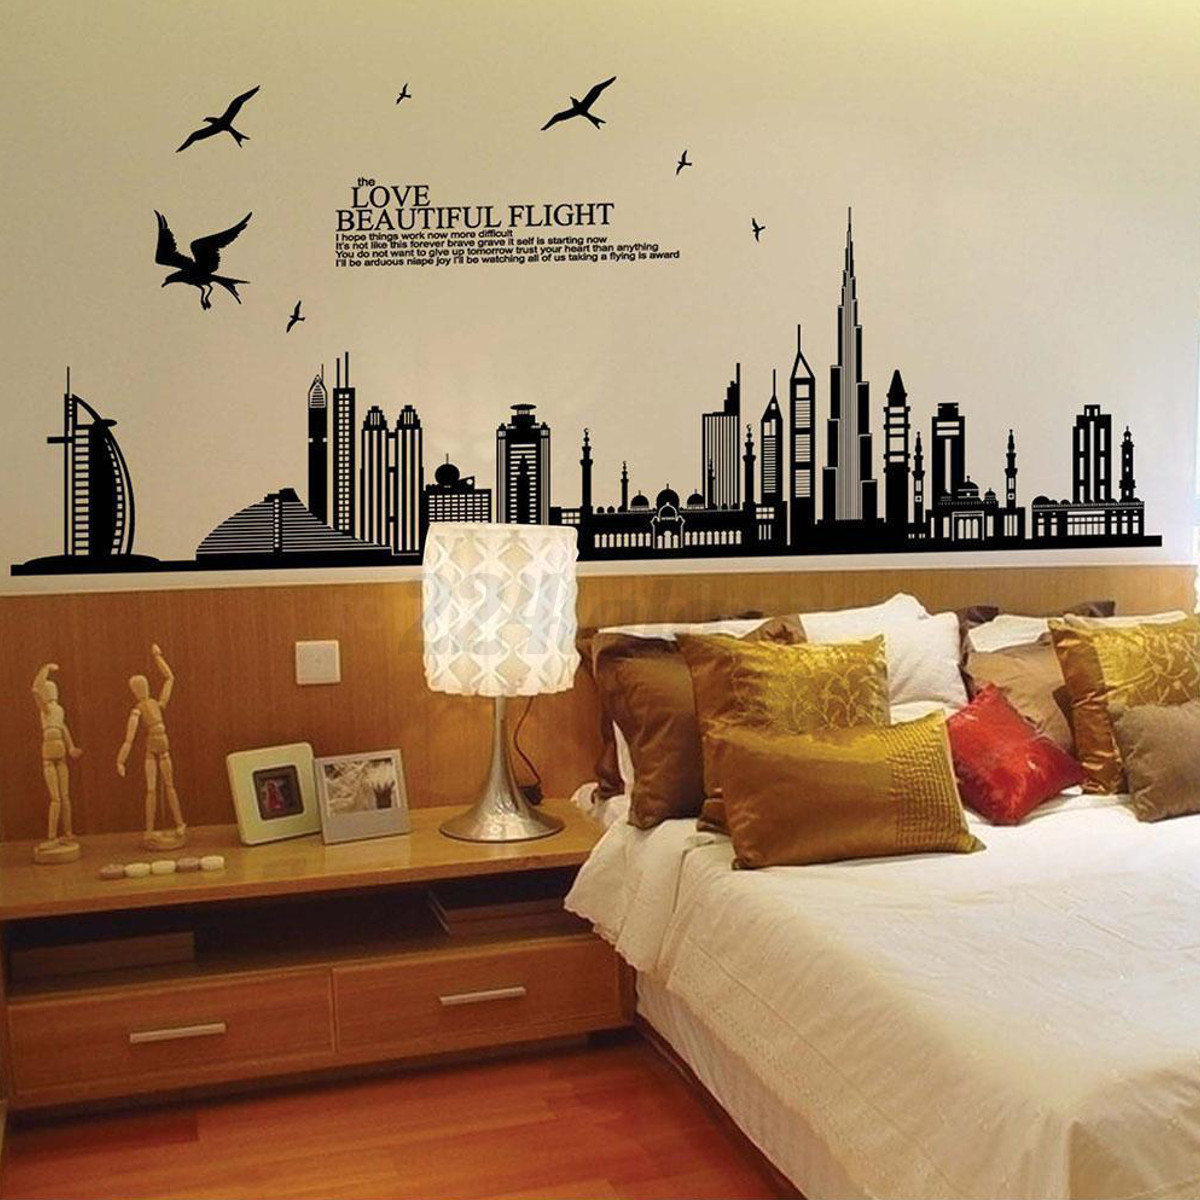 Family diy removable art vinyl quote words wall sticker for Diy wall photo mural